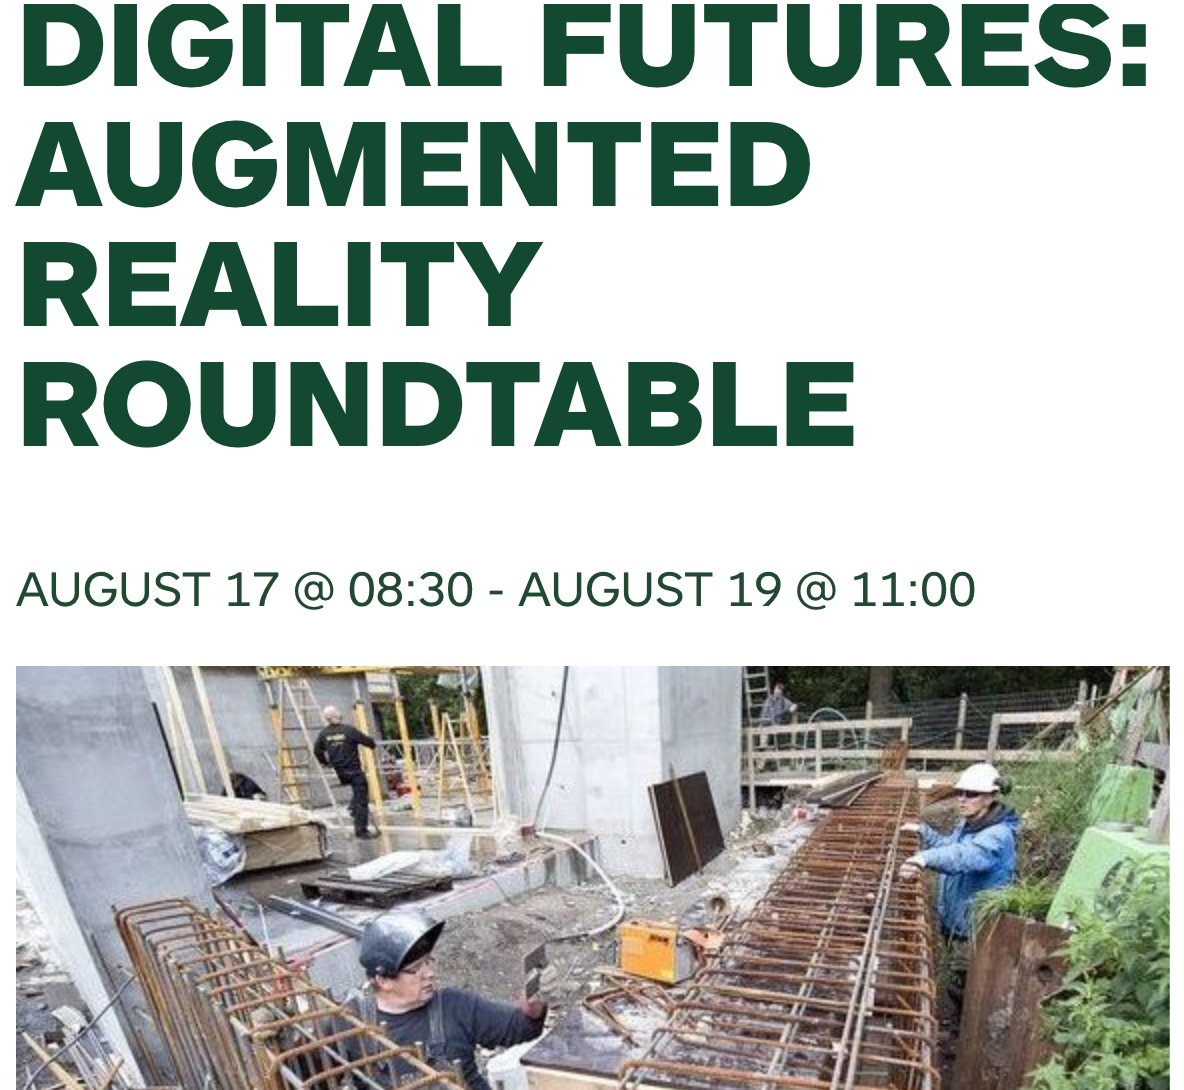 Very excited about tomorrow mornings roundtable in BLOXHUB. More info: https://t.co/L3MuP2ZRT1  #smartcities #digitalfutures #dkbyg #dkbiz